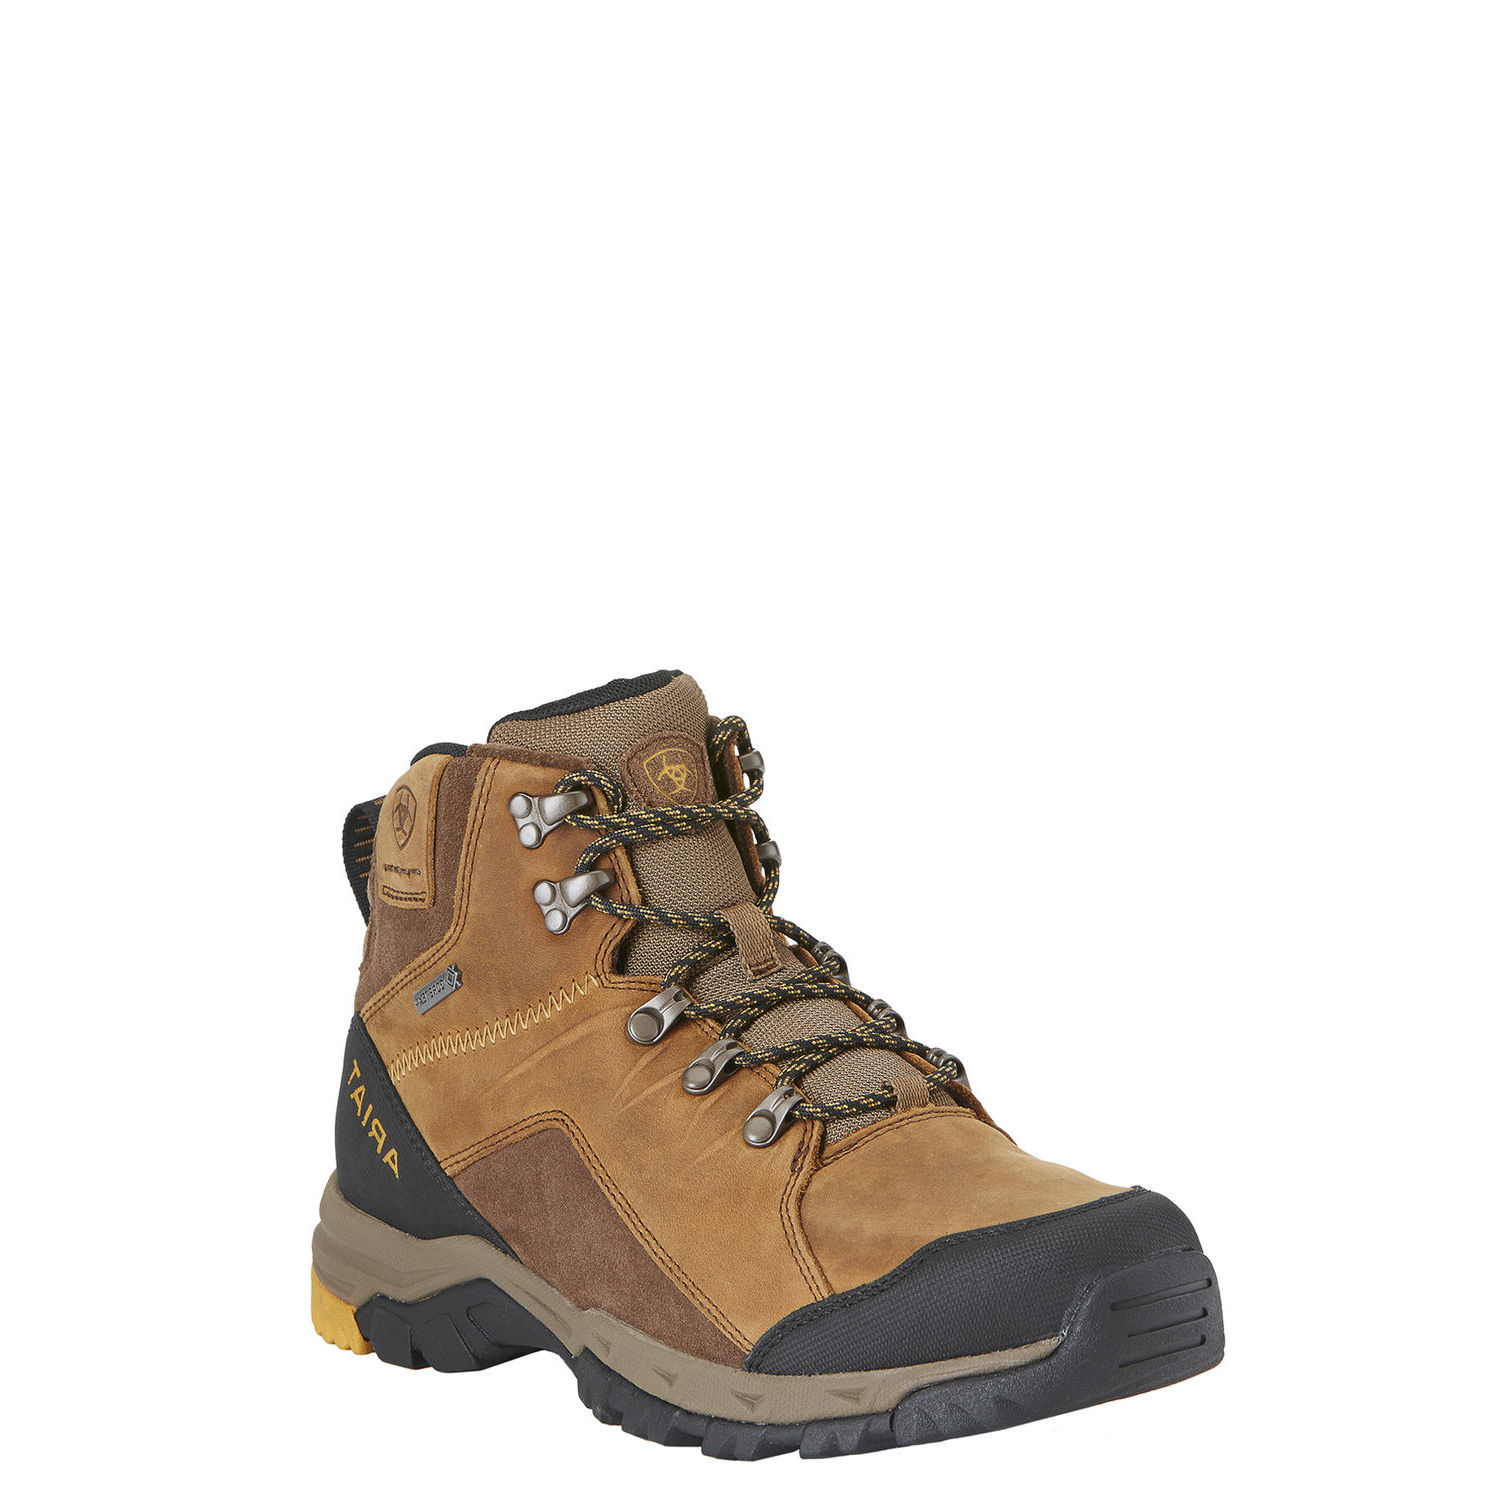 ARIAT Men's Skyline Mid GTX